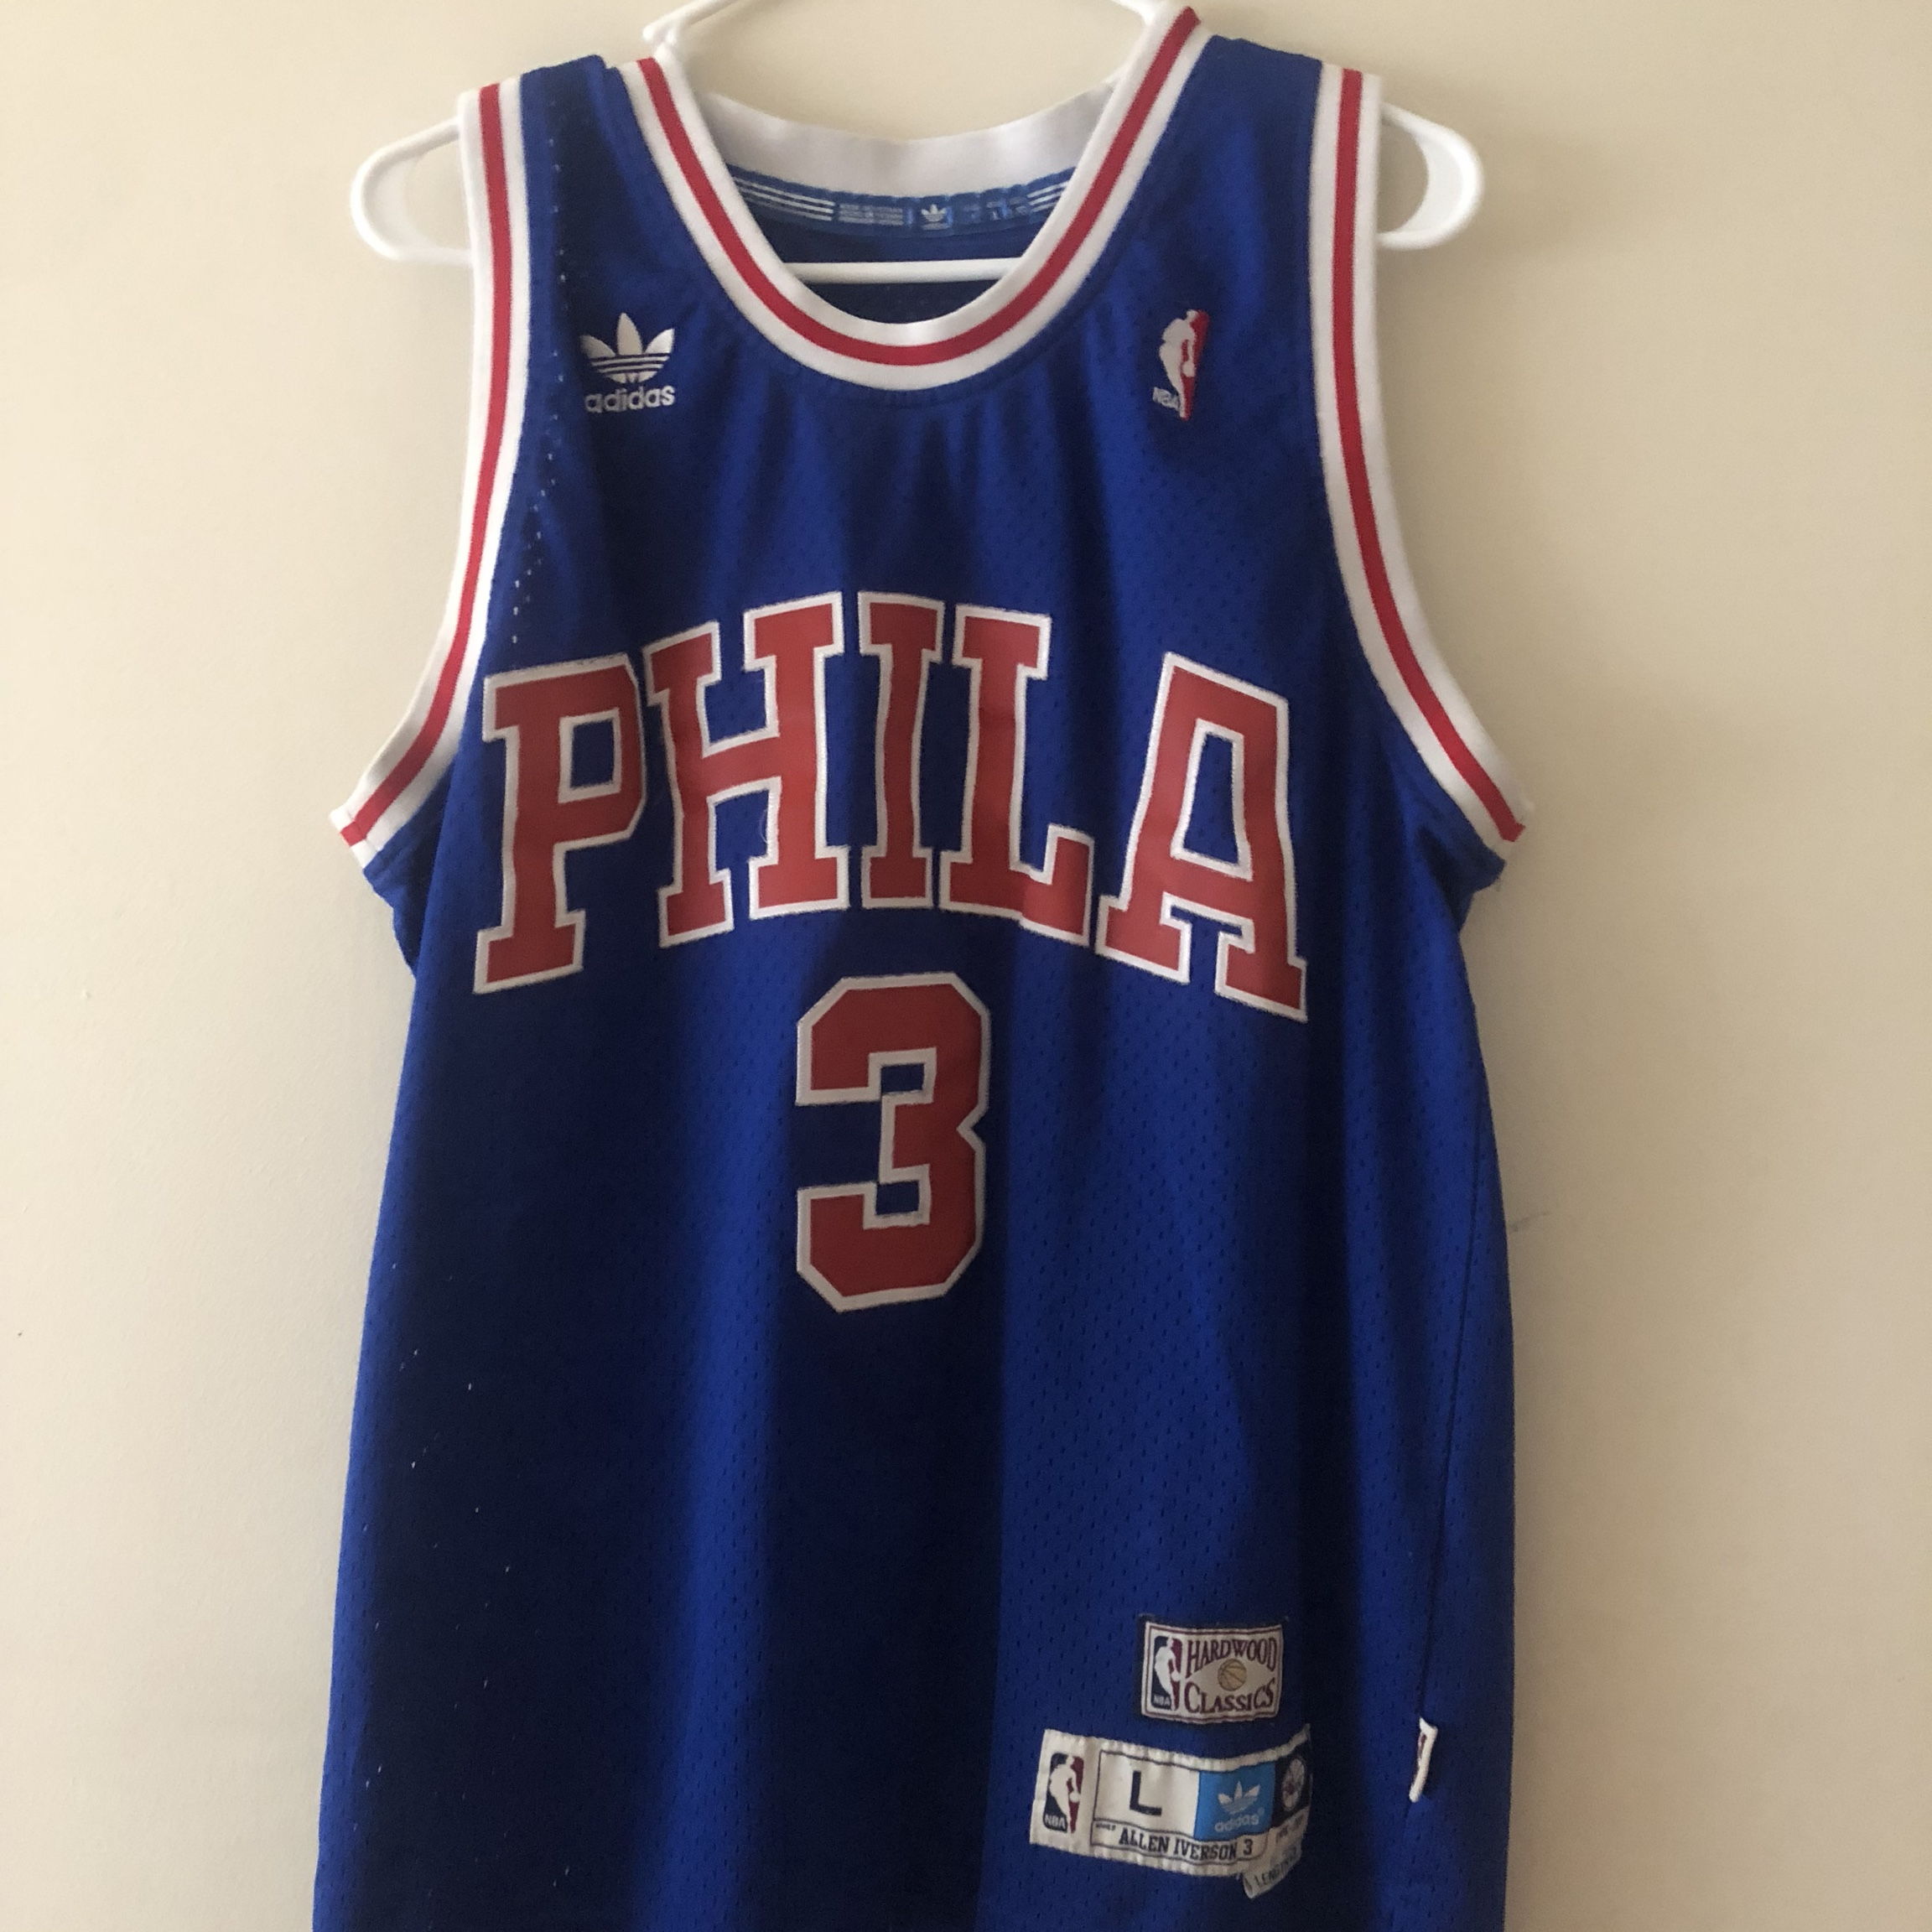 promo code 8403e 2a110 Allen Iverson Adidas Jersey Great Condition - Depop